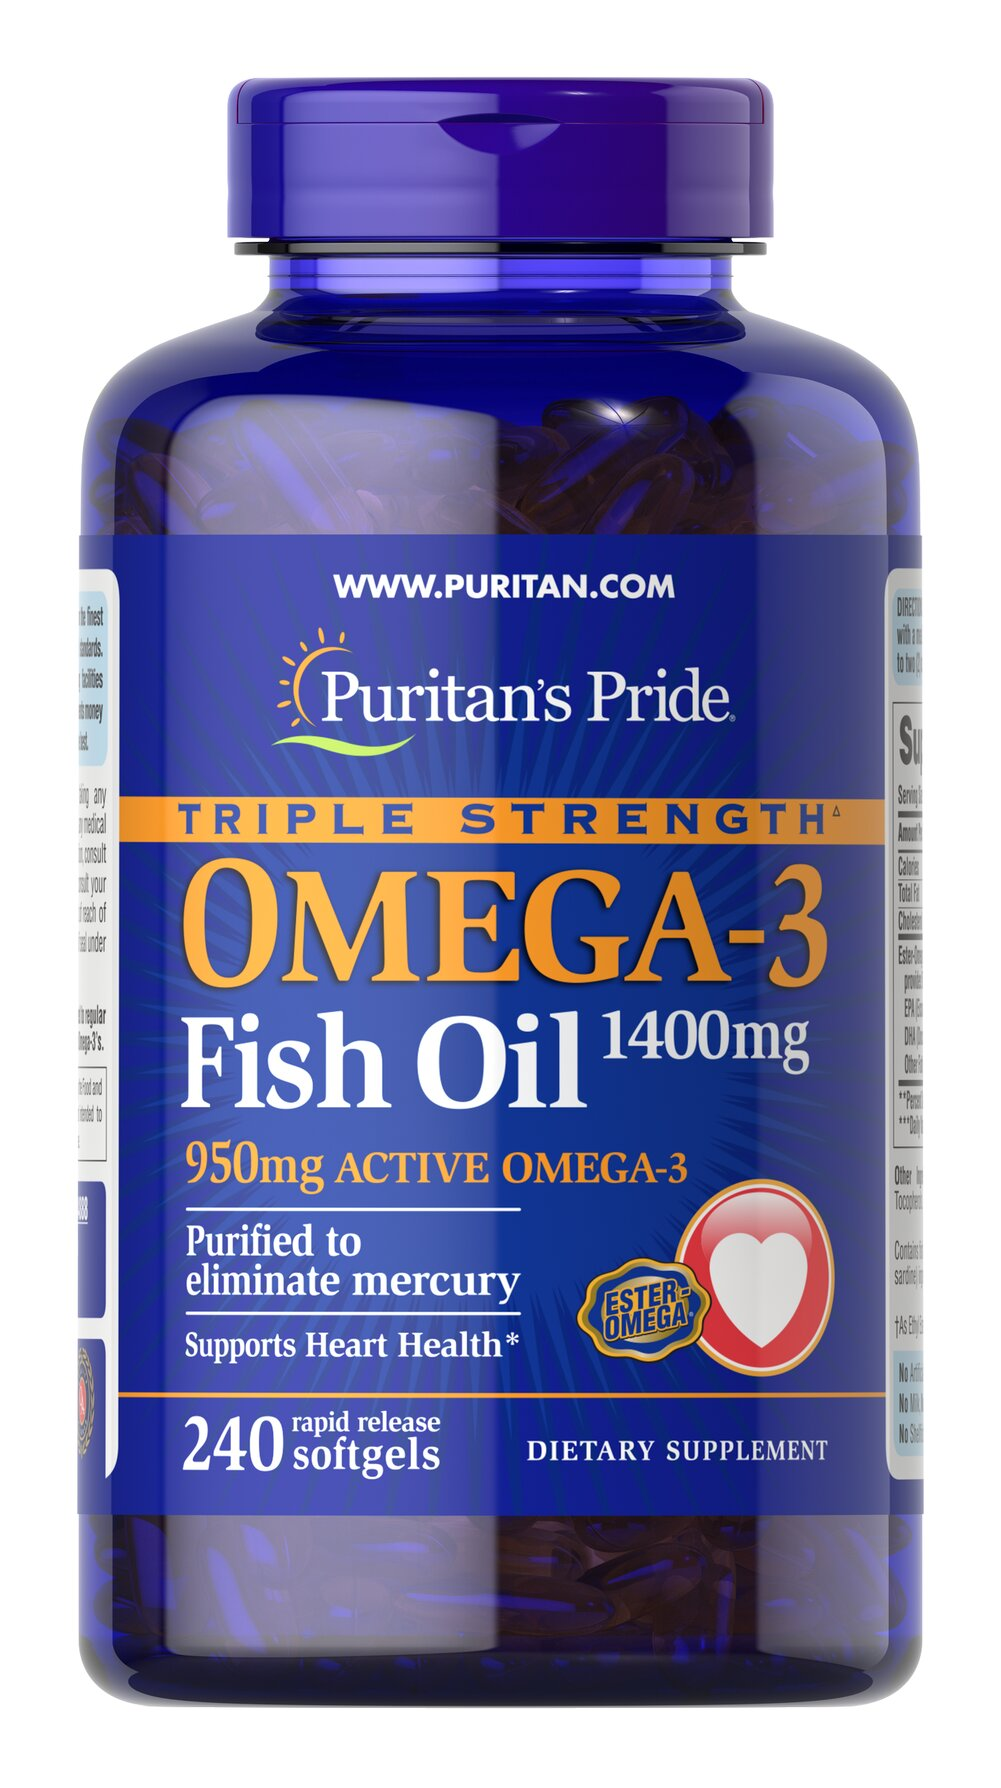 Triple Strength Omega-3 Fish Oil 1360 mg (950 mg Active Omega-3) <p><strong>Purified to Eliminate Mercury</strong></p><p>Contains 950 mg of active Omega-3 per softgel — our highest potency! </p> 240 Softgels 1360 mg $74.99